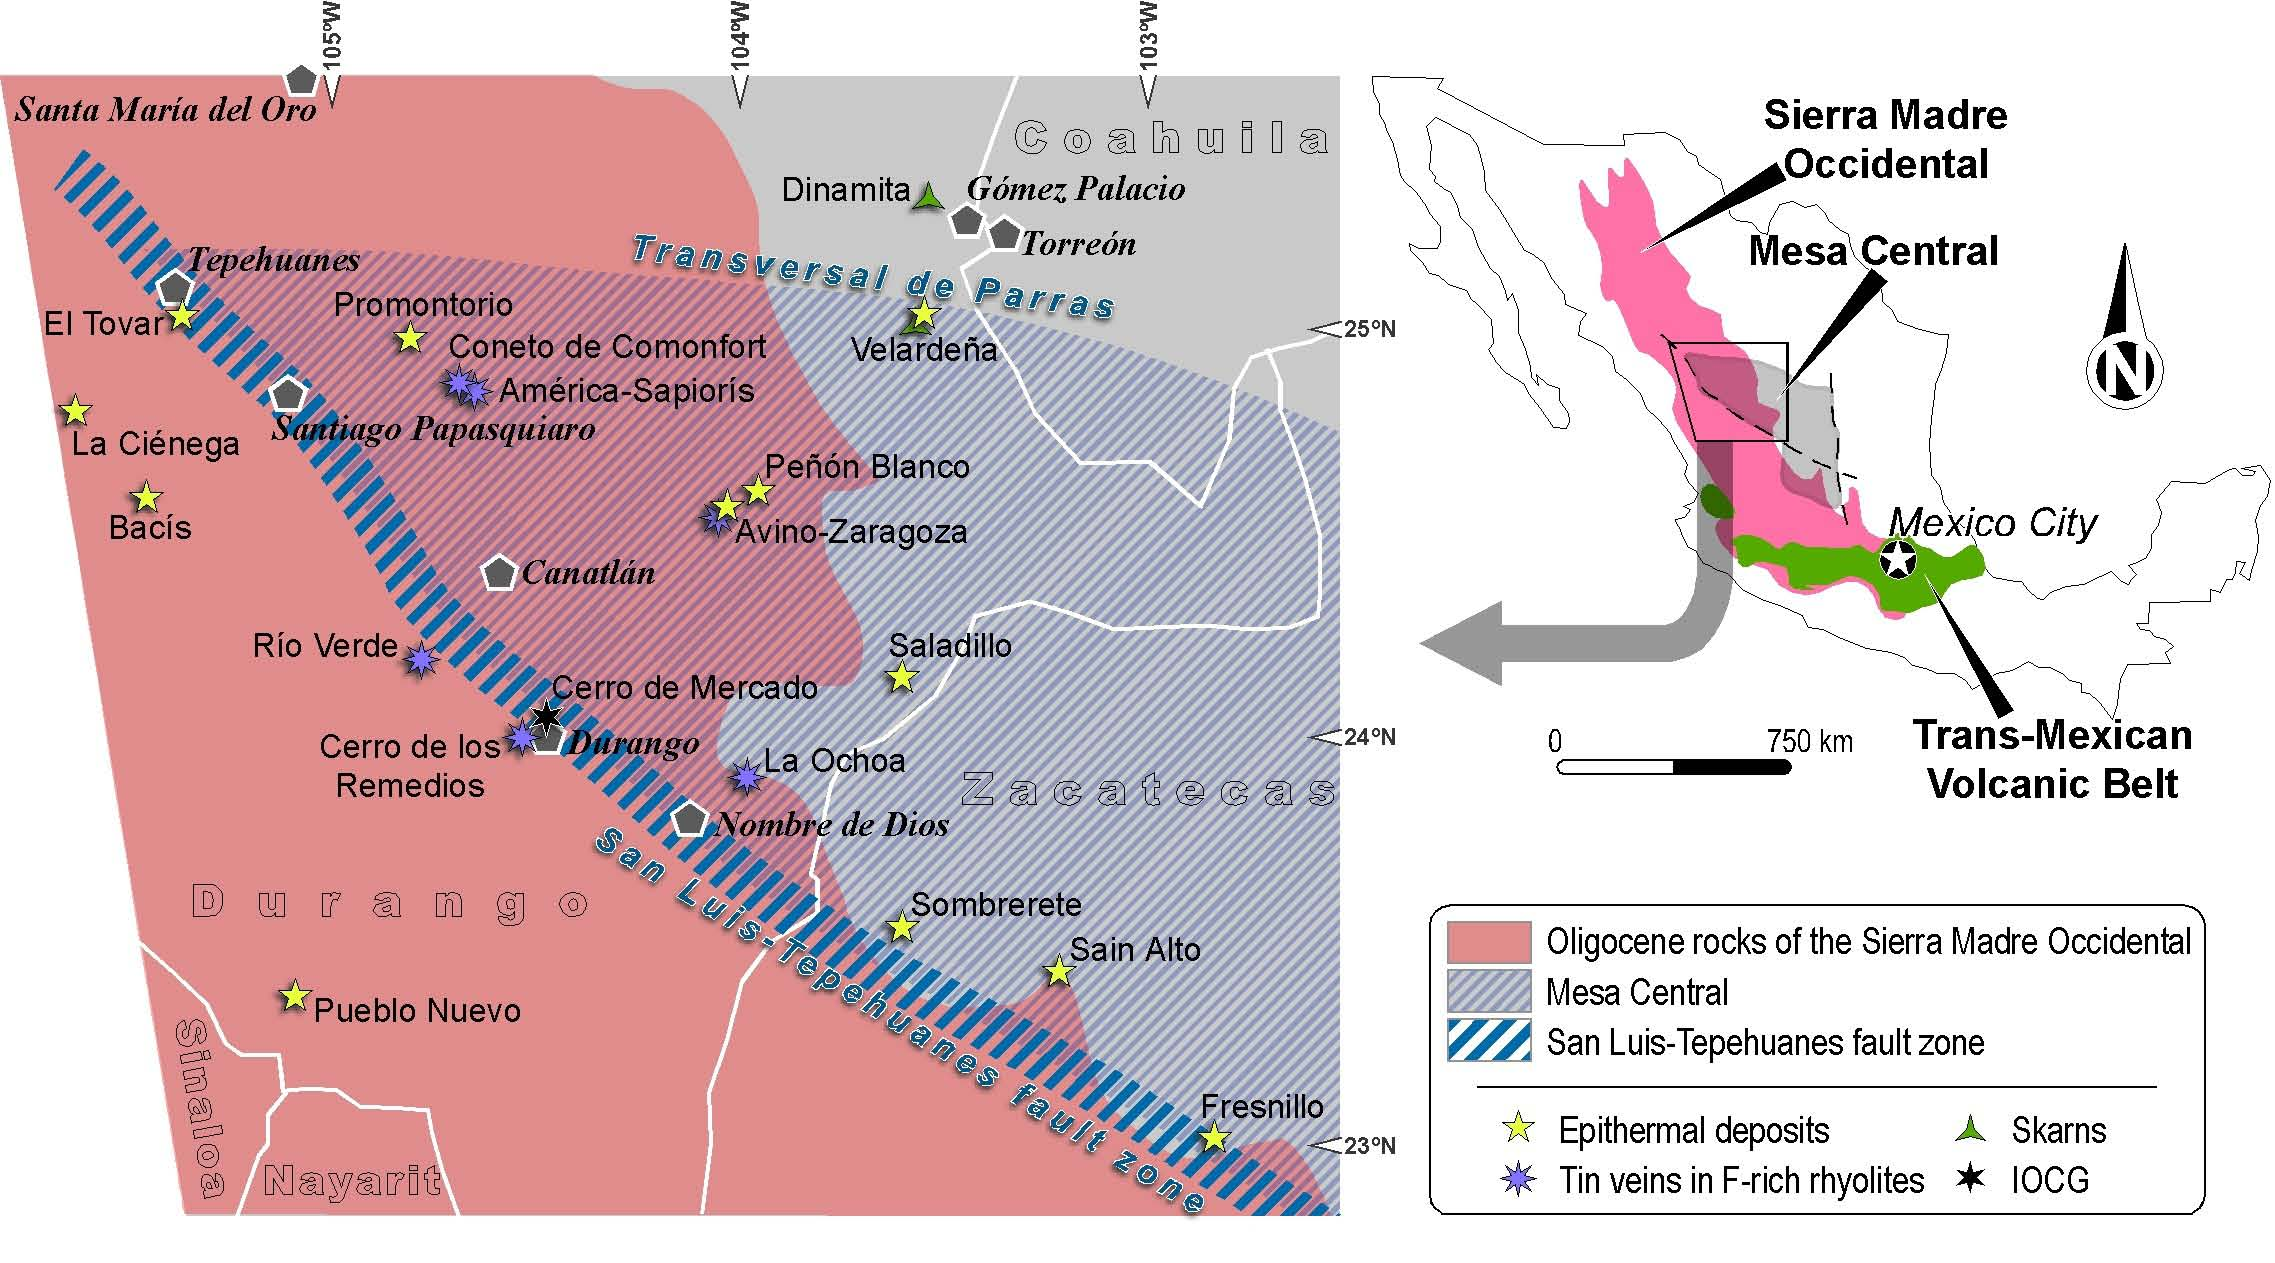 simplified geological map of the westernmost ending of the mesa central in central mexico showing the approximate extent of the oligocene volcanic rocks of